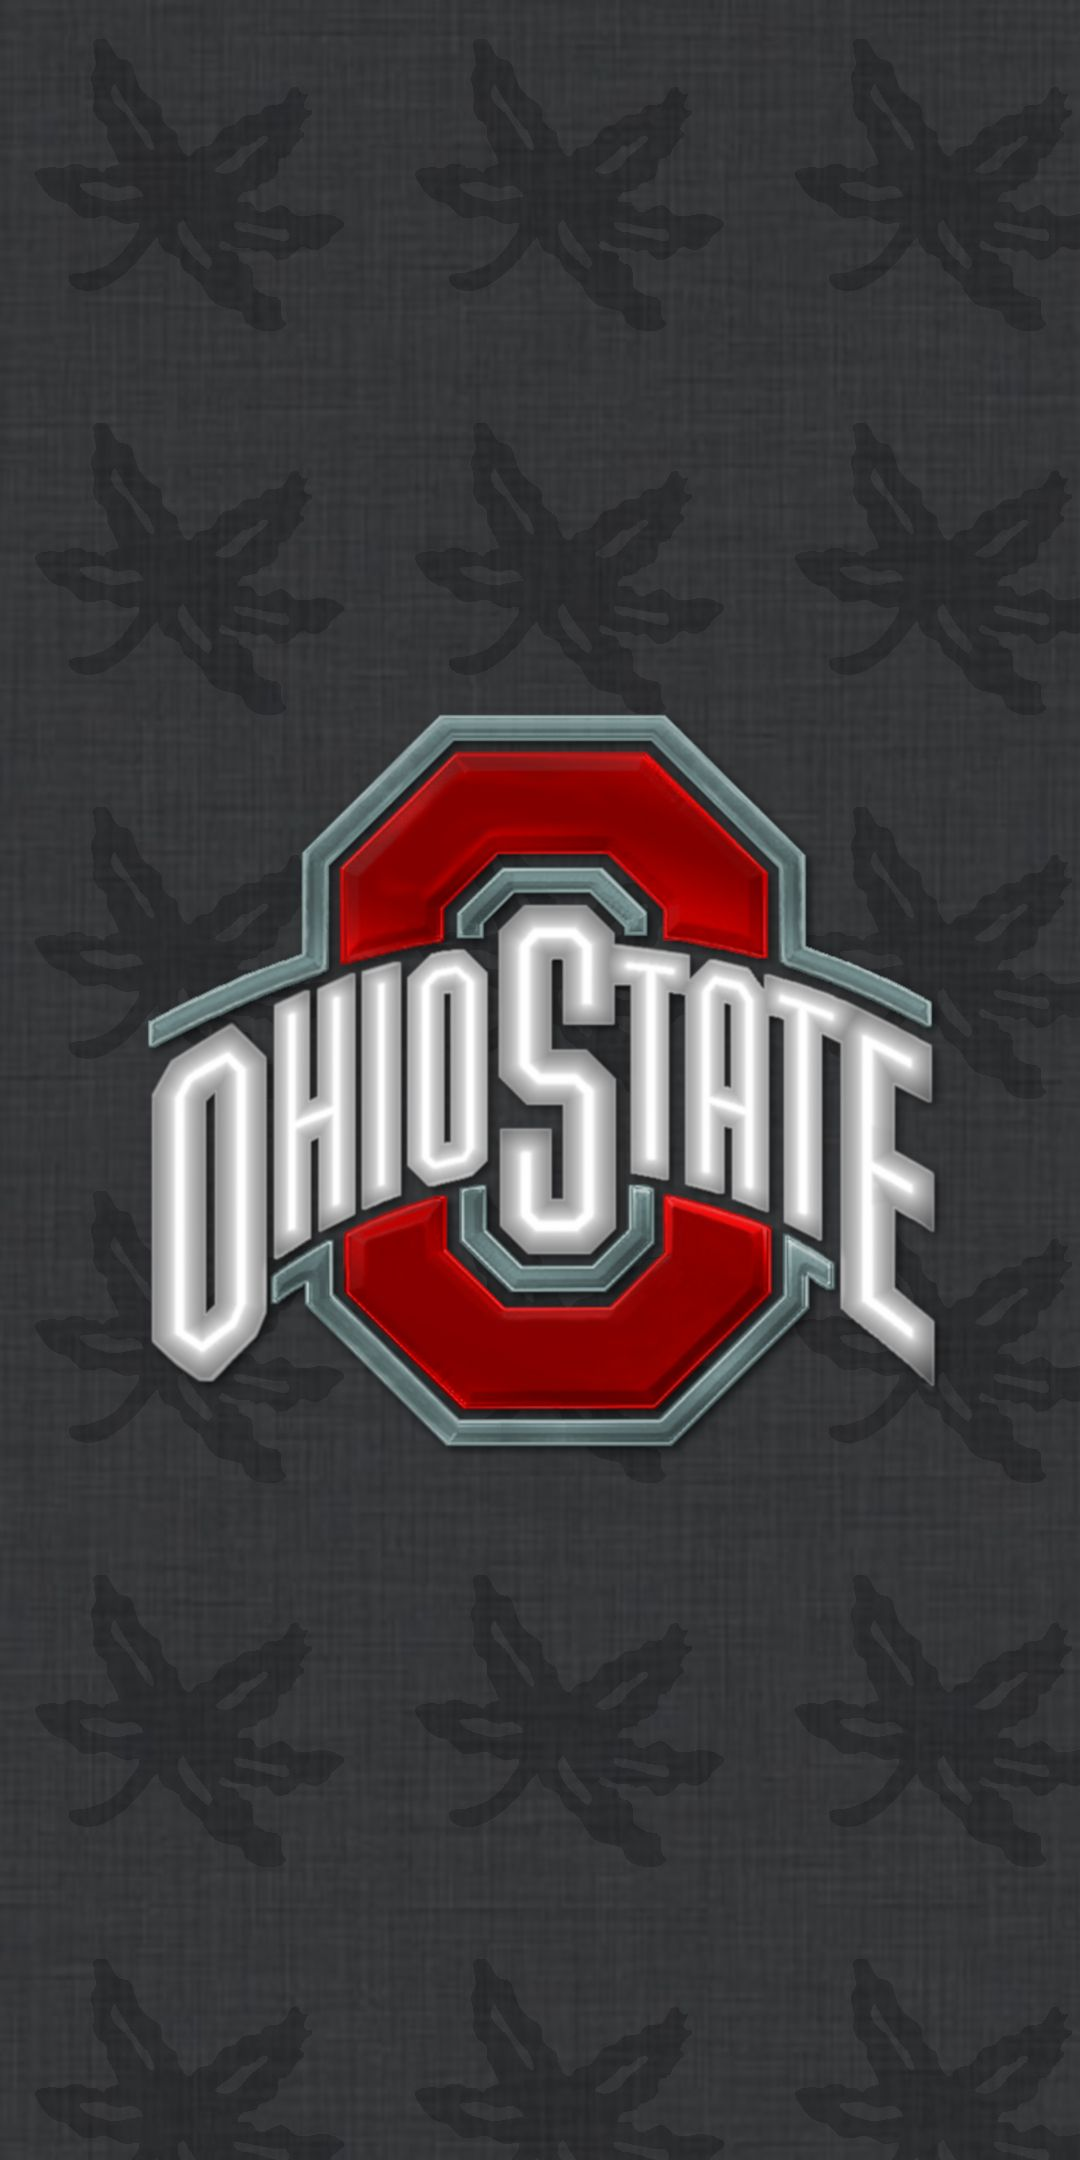 Osu Wallpaper 115 For Moto G6 Plus 1080x2160px 409ppi Ohio State Buckeyes Football Ohio State Football Ohio State Wallpaper